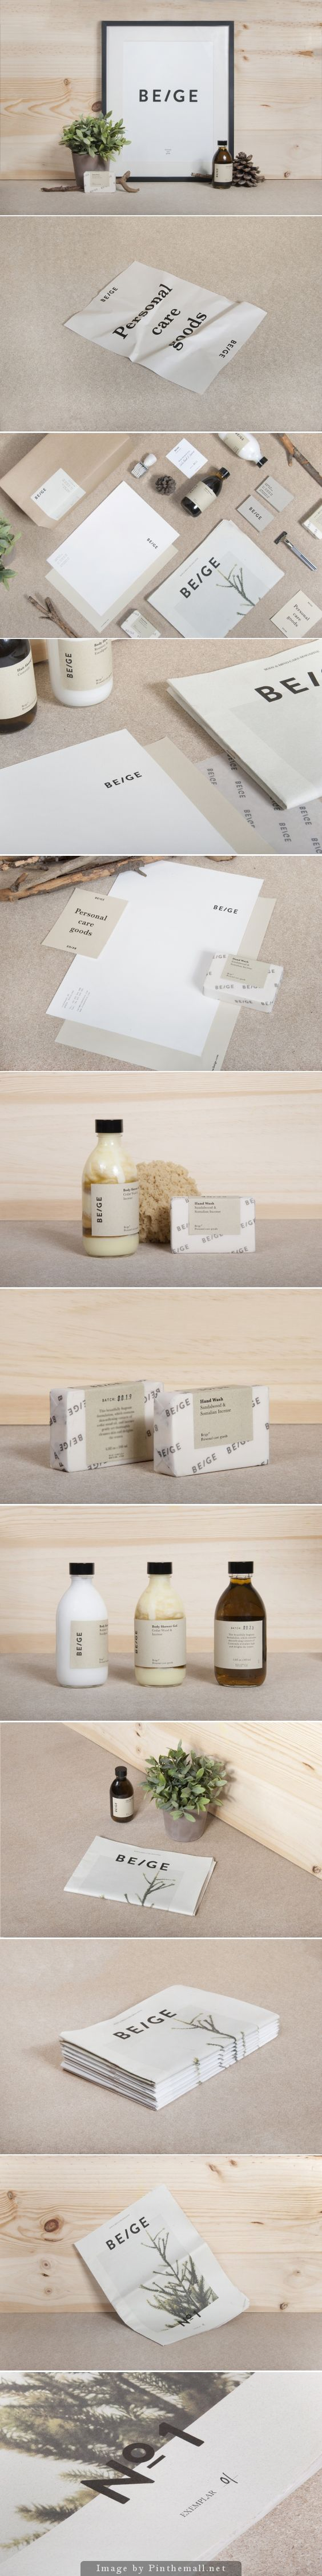 BE/GE identity by Josep Puy